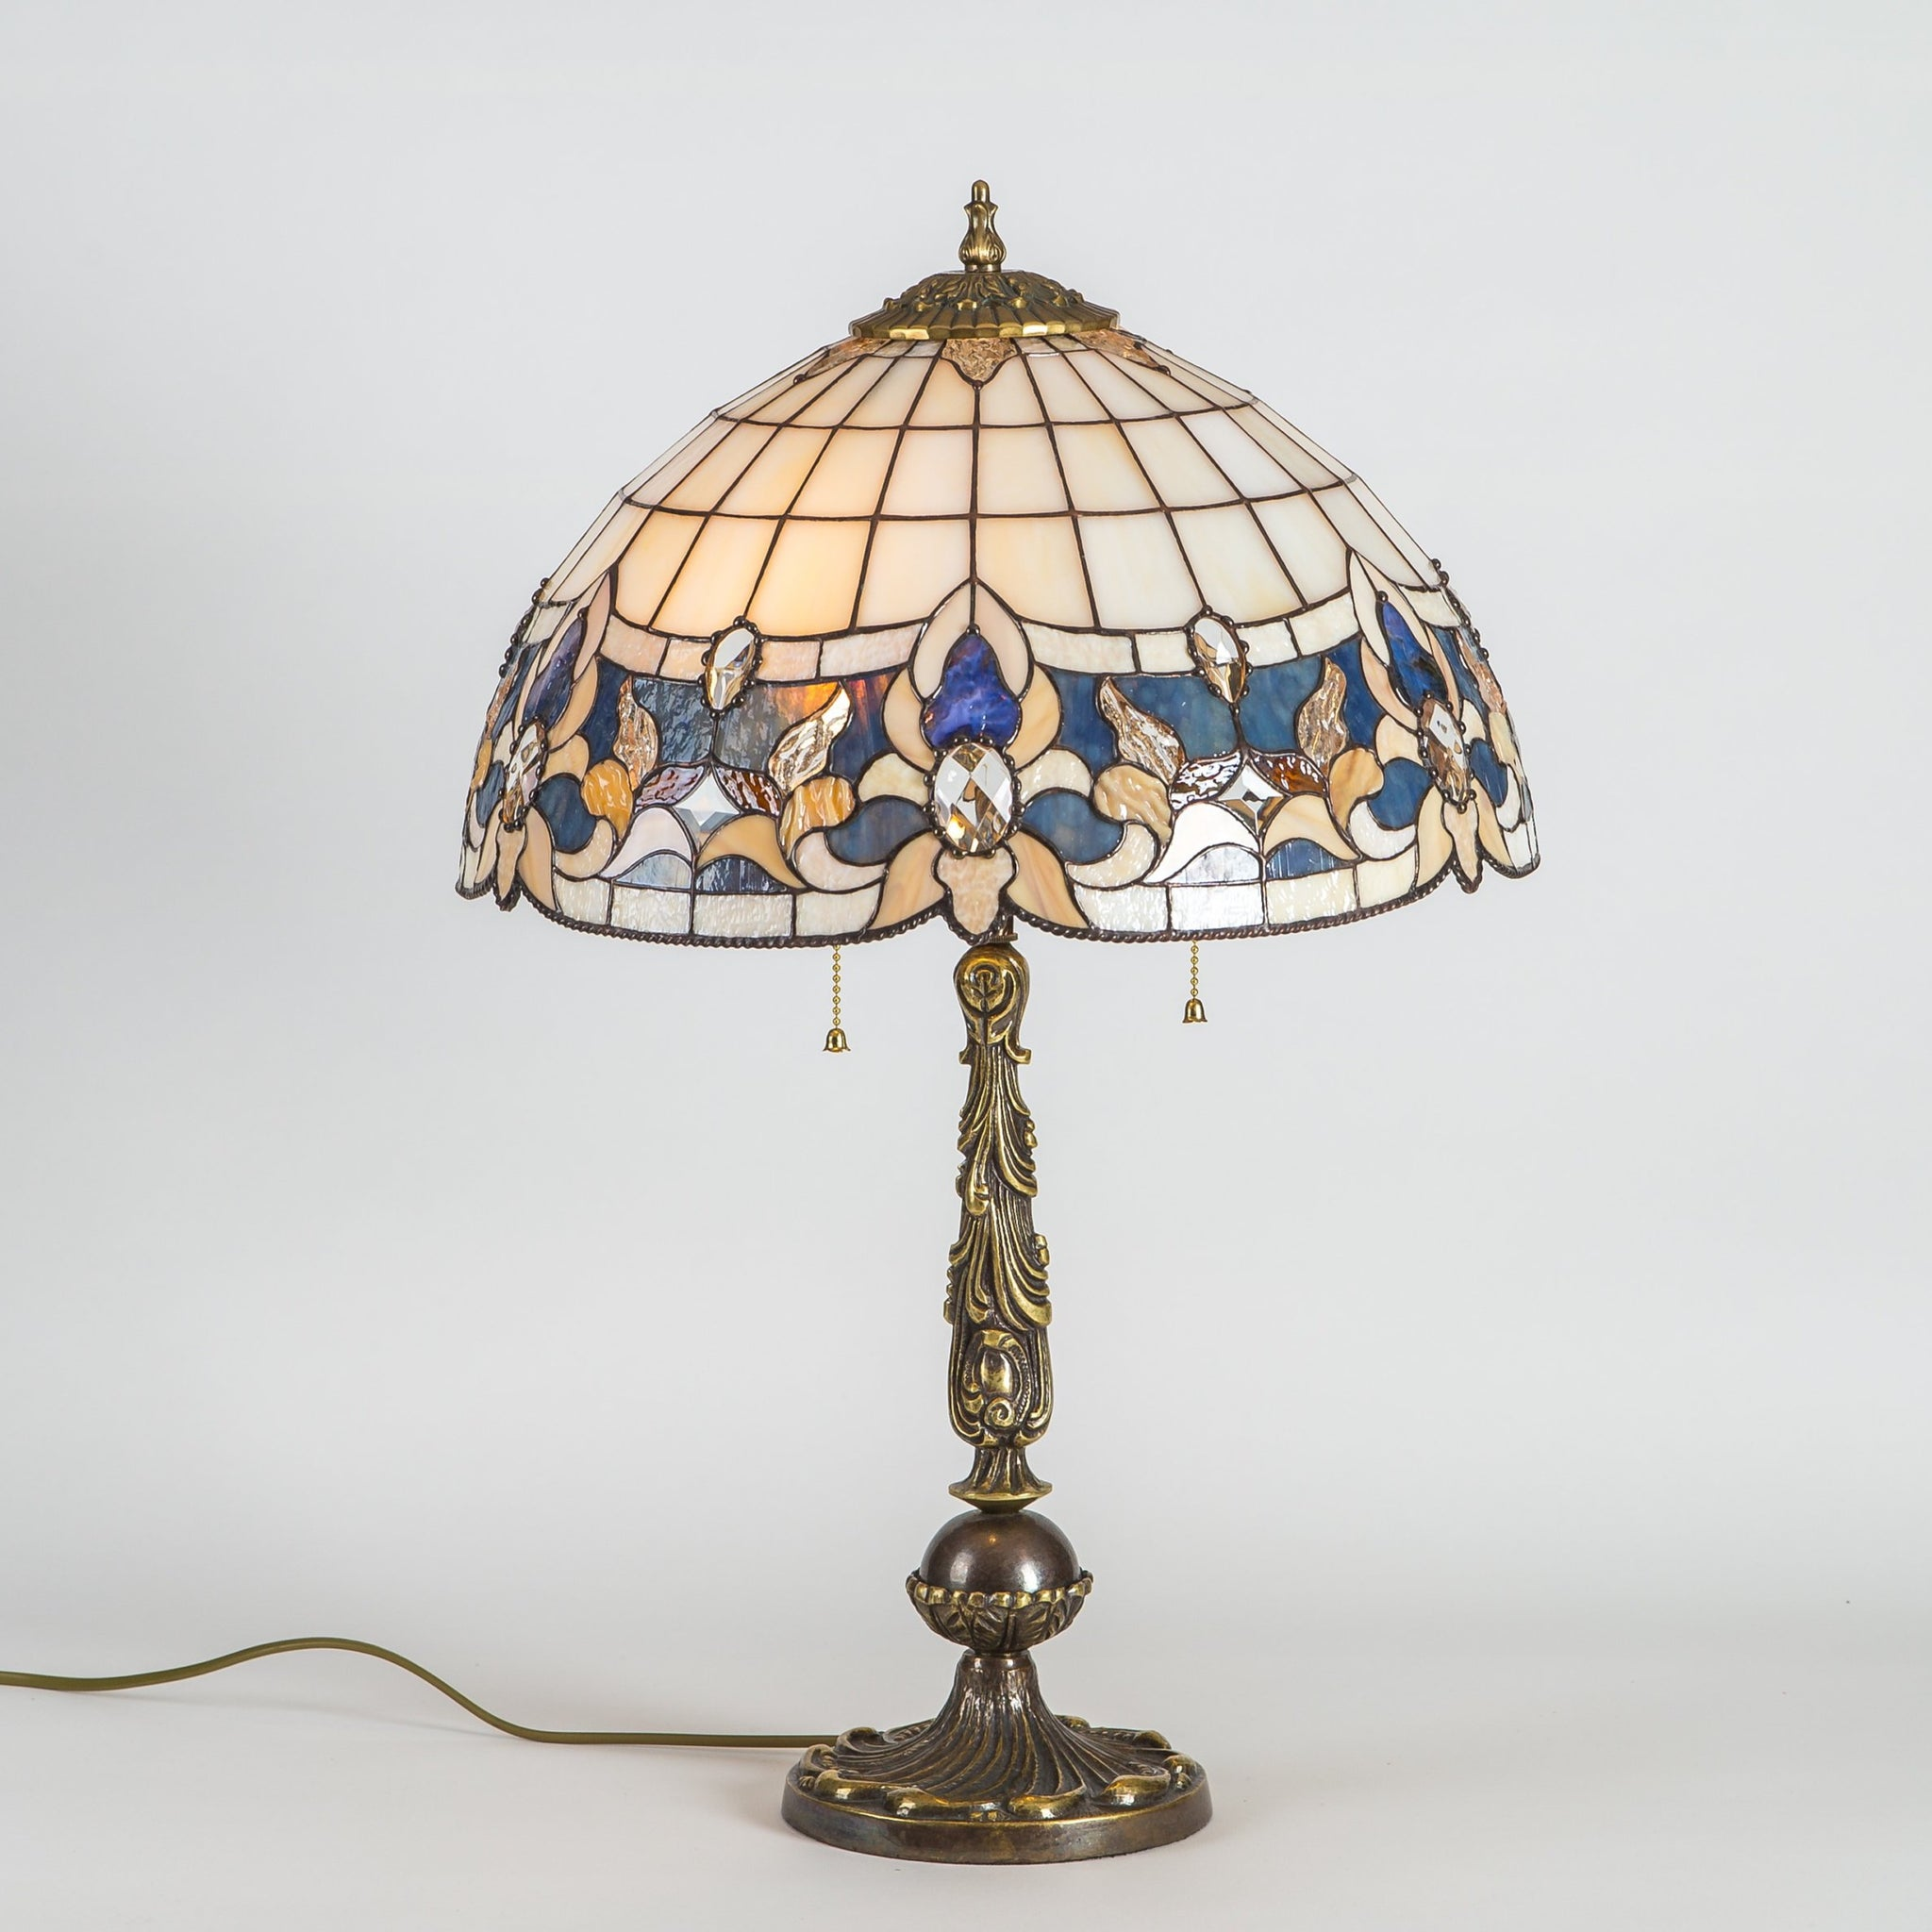 Beige Stained Glass Tiffany Lamp With Blue Inserts